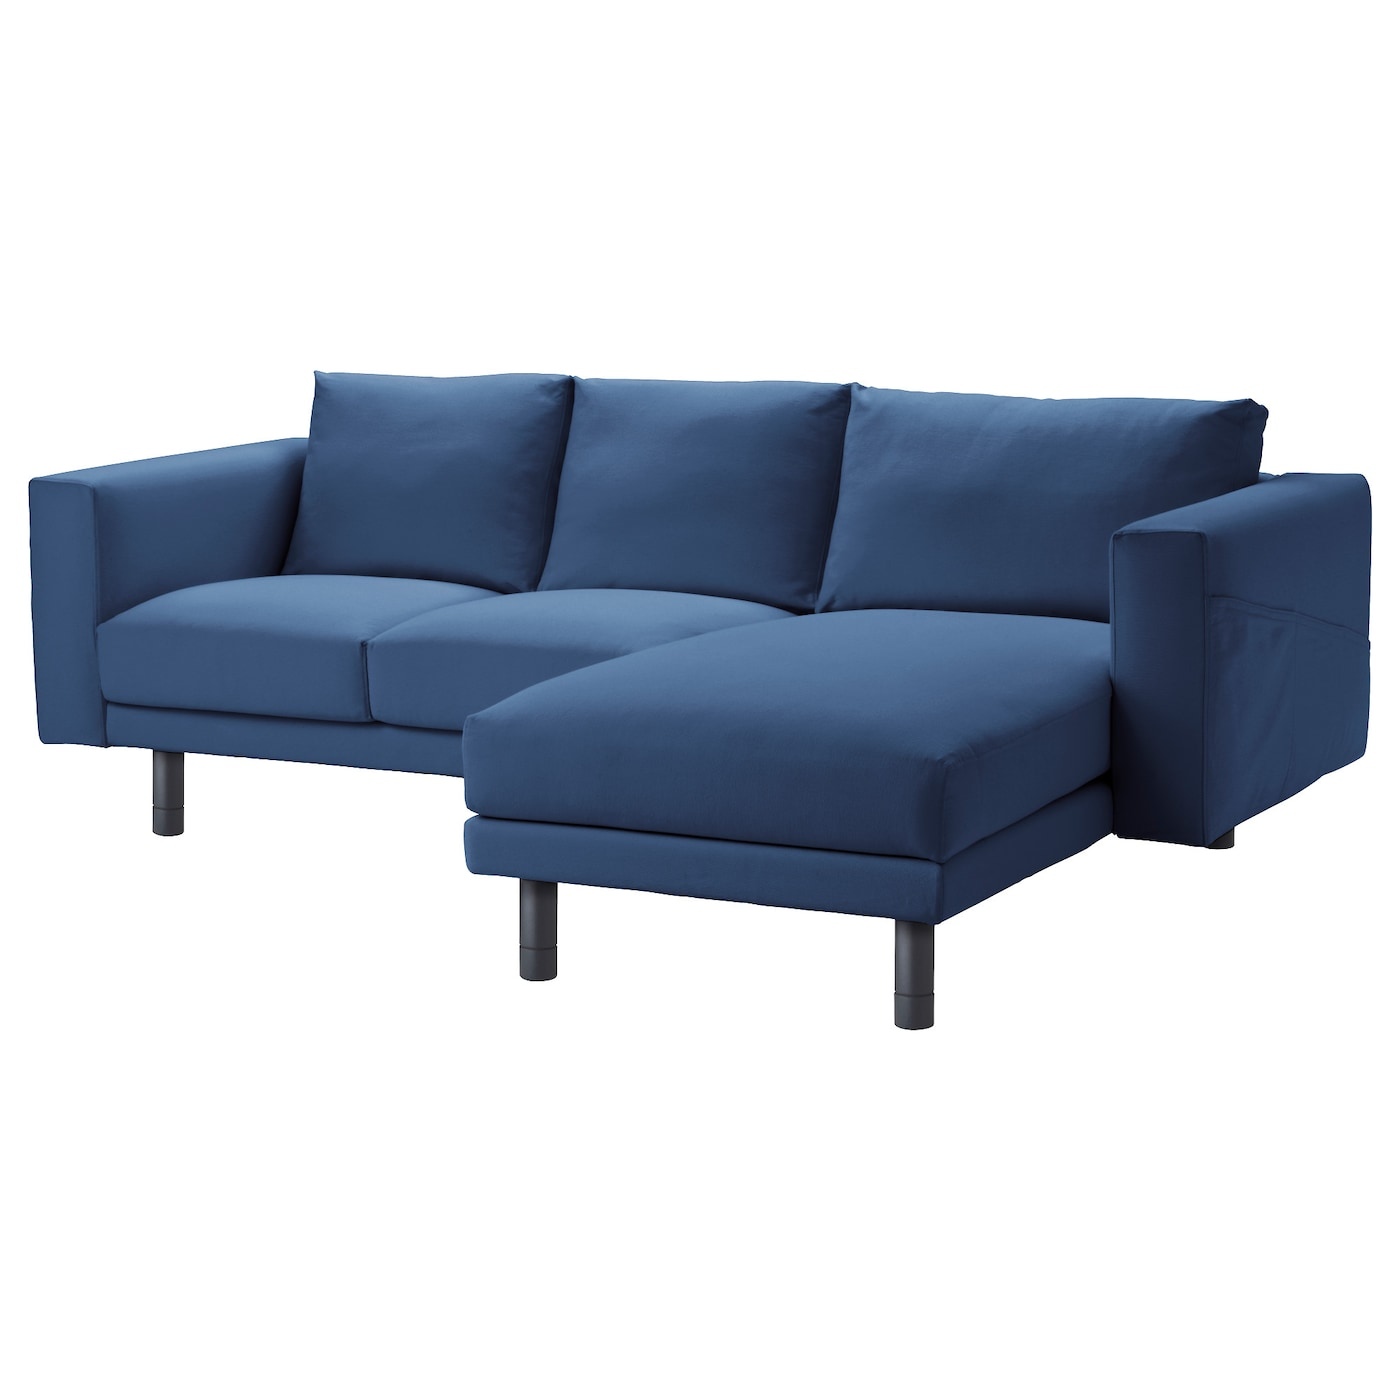 Norsborg two seat sofa with chaise longue gr sbo dark blue for 2 seater sofa with chaise